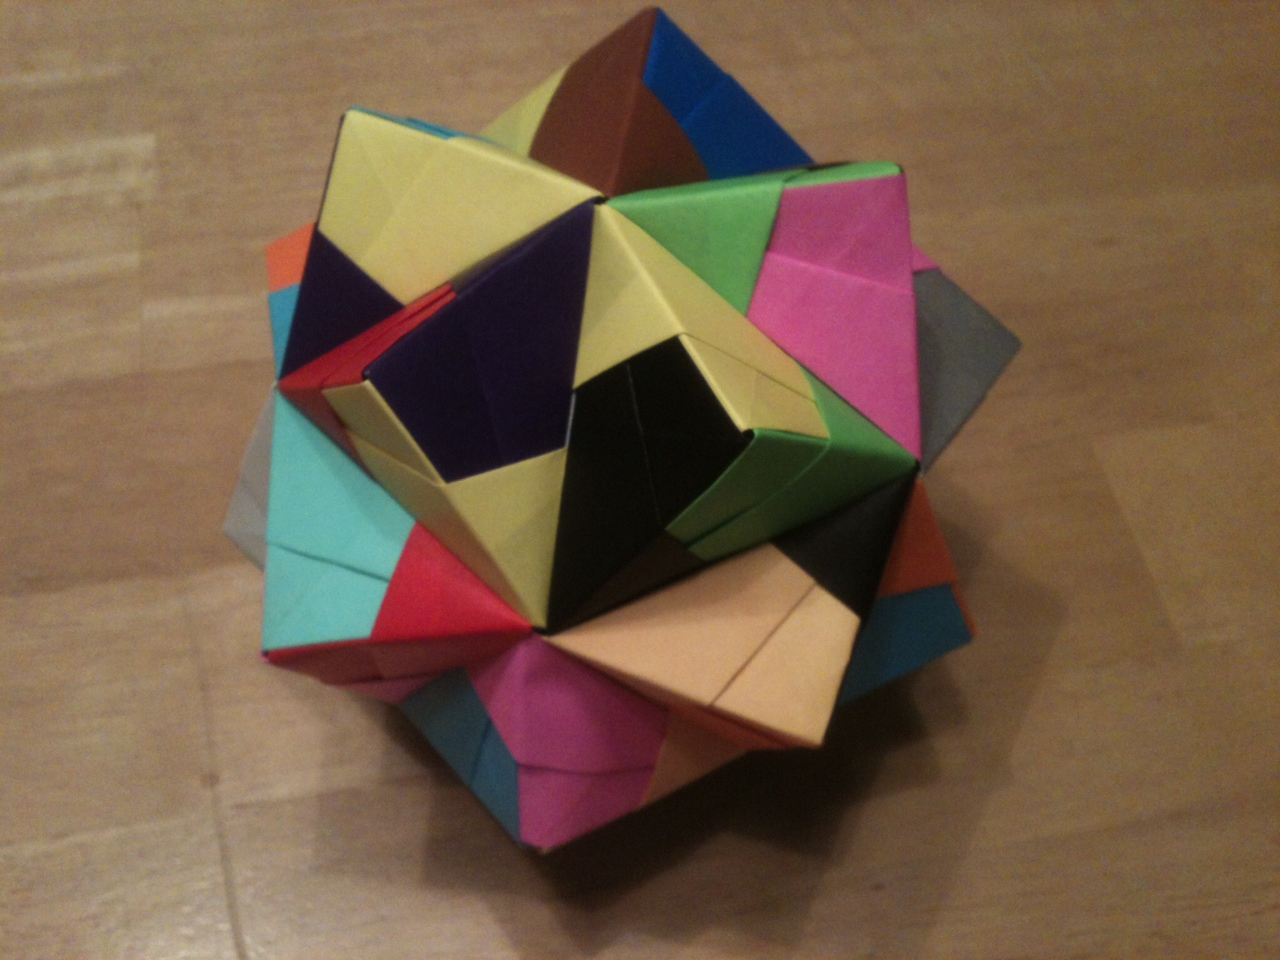 My flavor of origami rc lewis its called a stellated icosahedron the stellated means its pointy and star like the icosahedron means if those pointy parts were flattened down jeuxipadfo Gallery